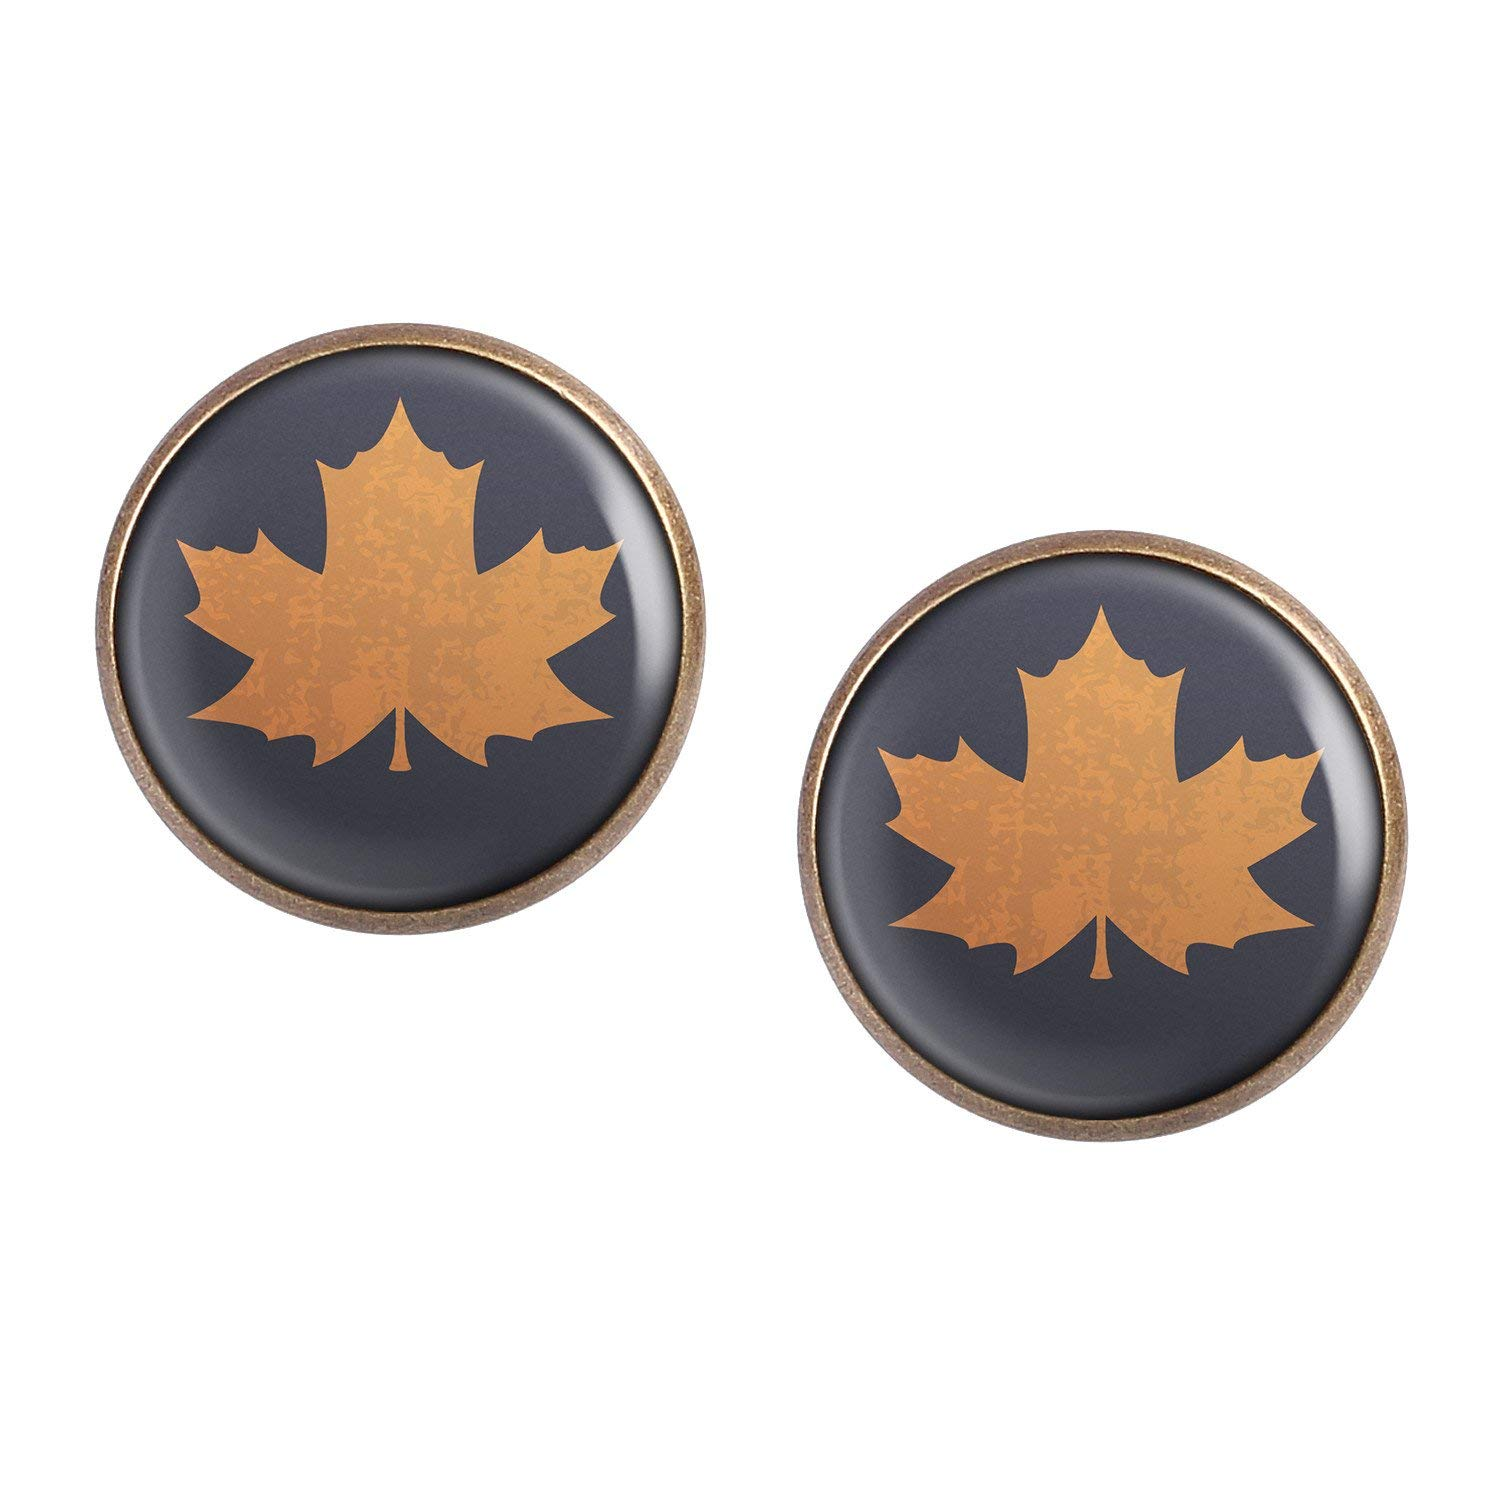 3 bronze different sizes Stud Earring Pair with Cabochon Picture Autumn Leaves Journal